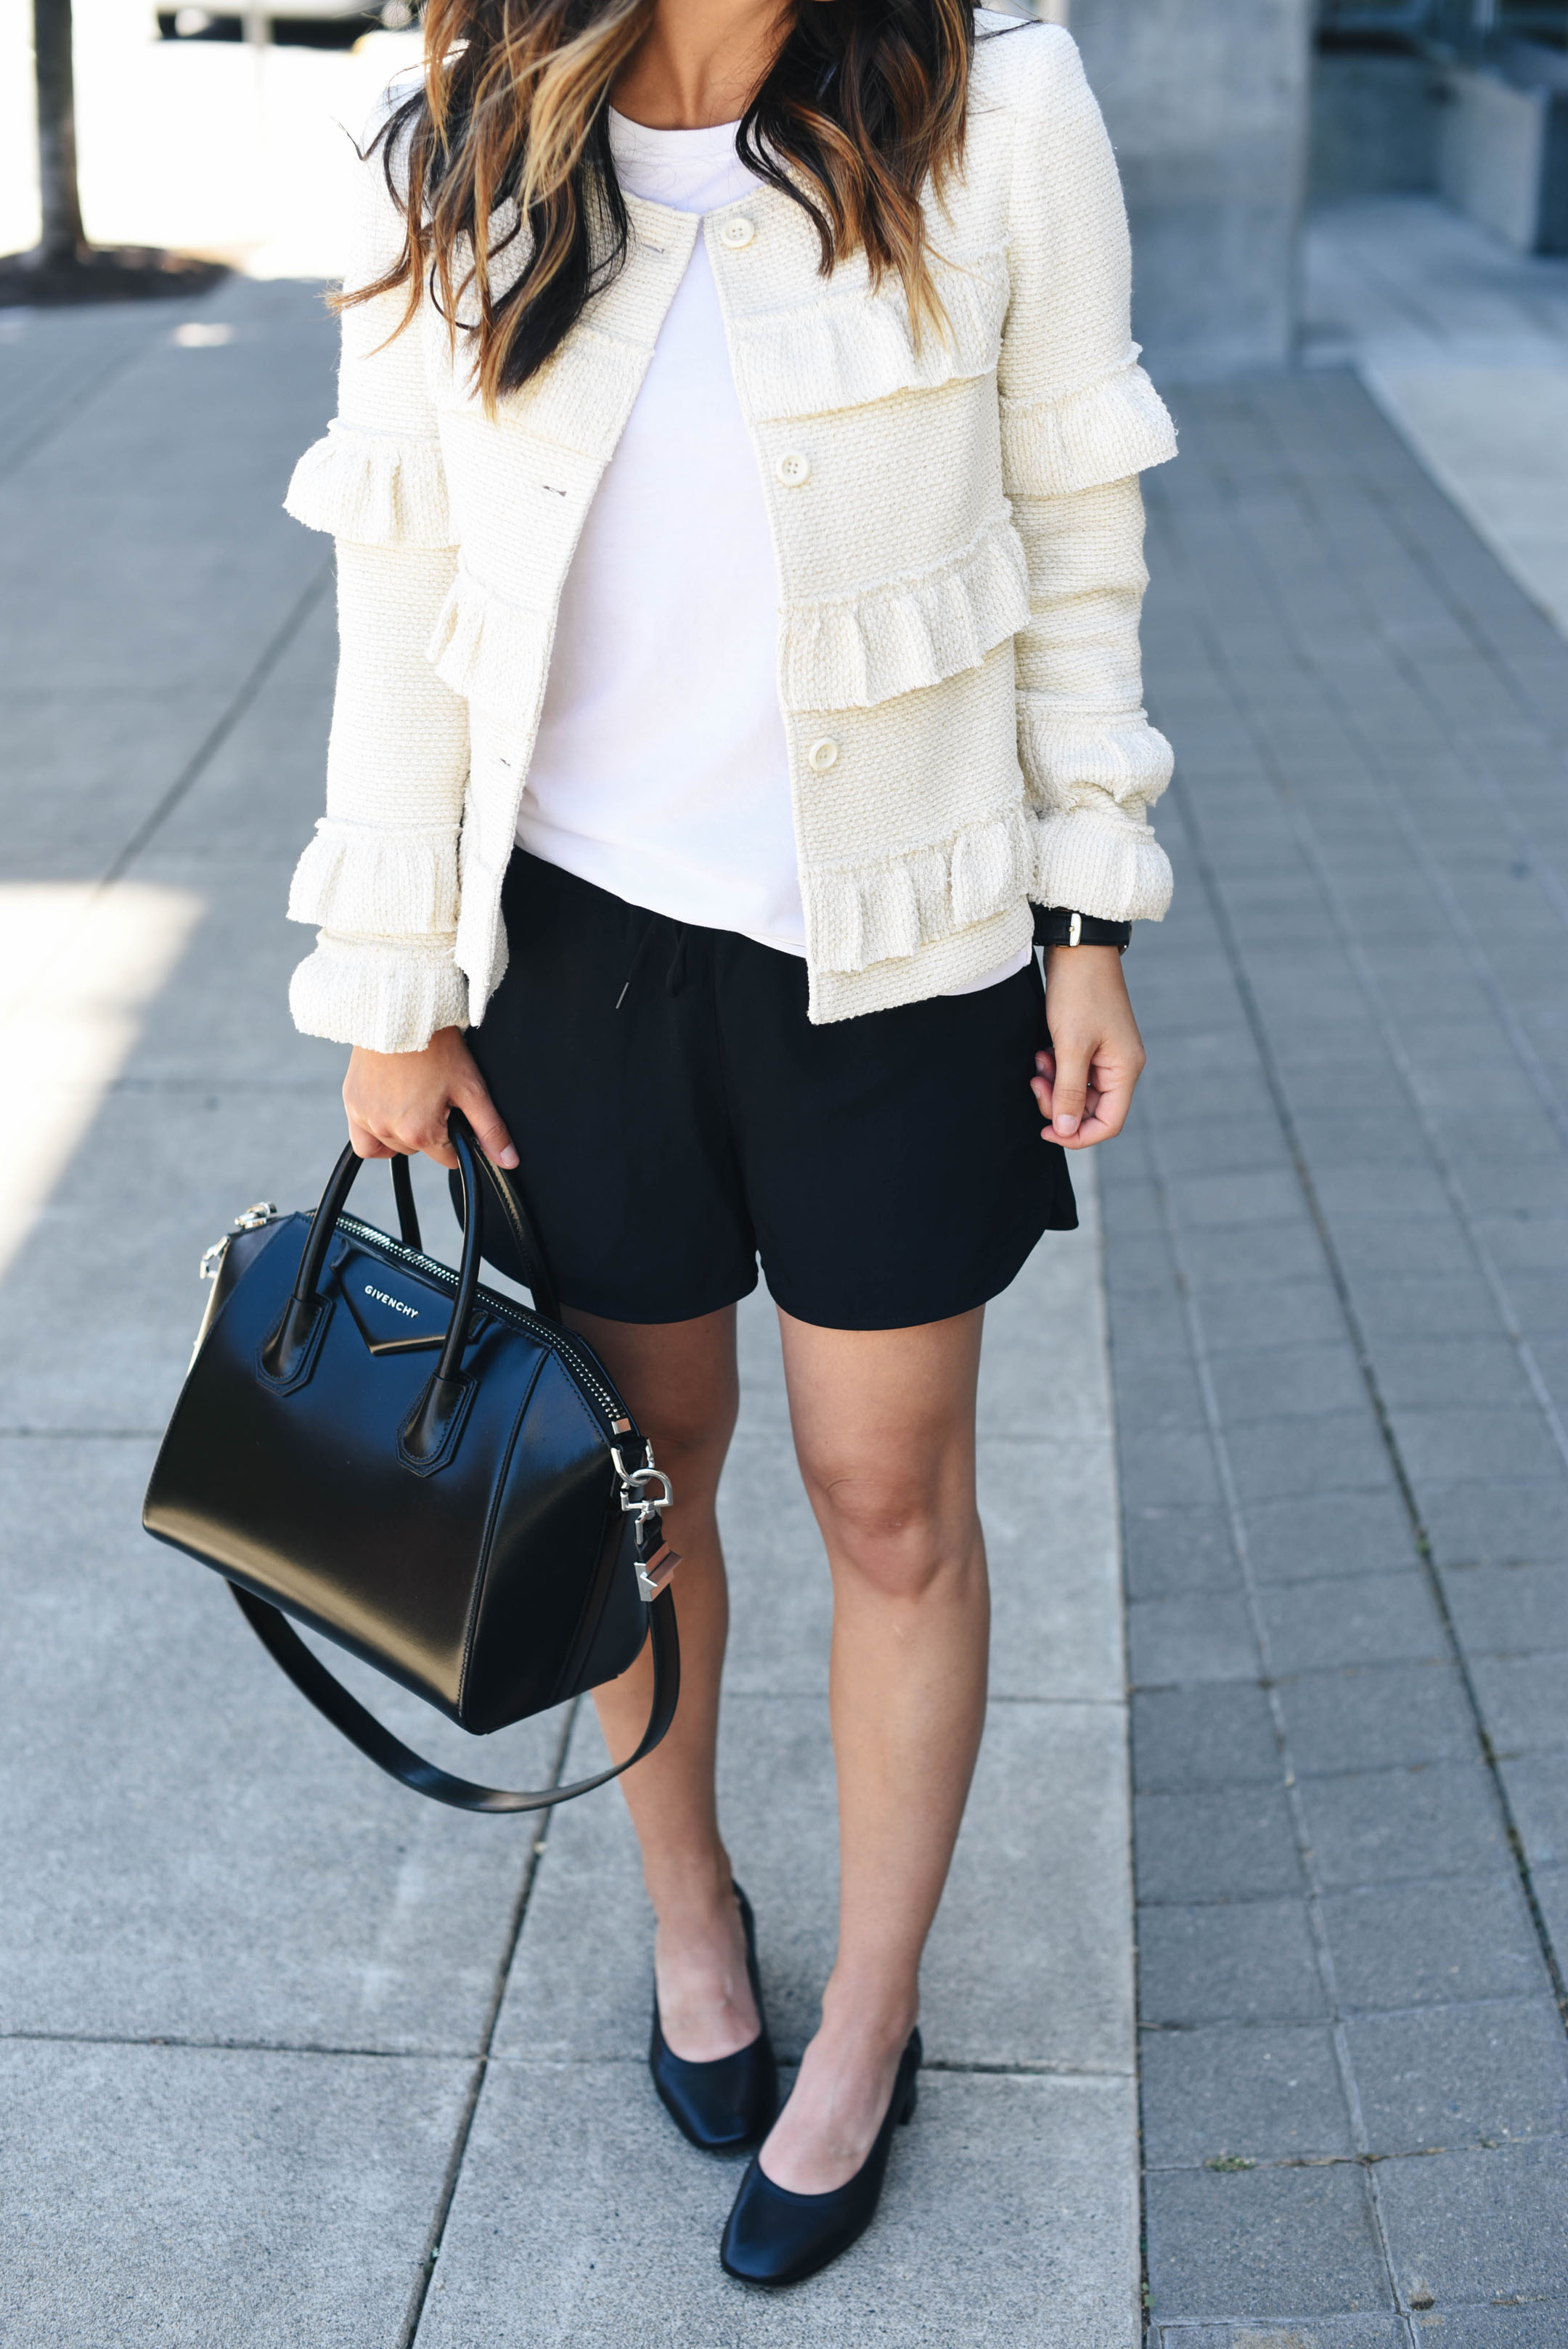 Club Monaco ruffle jacket